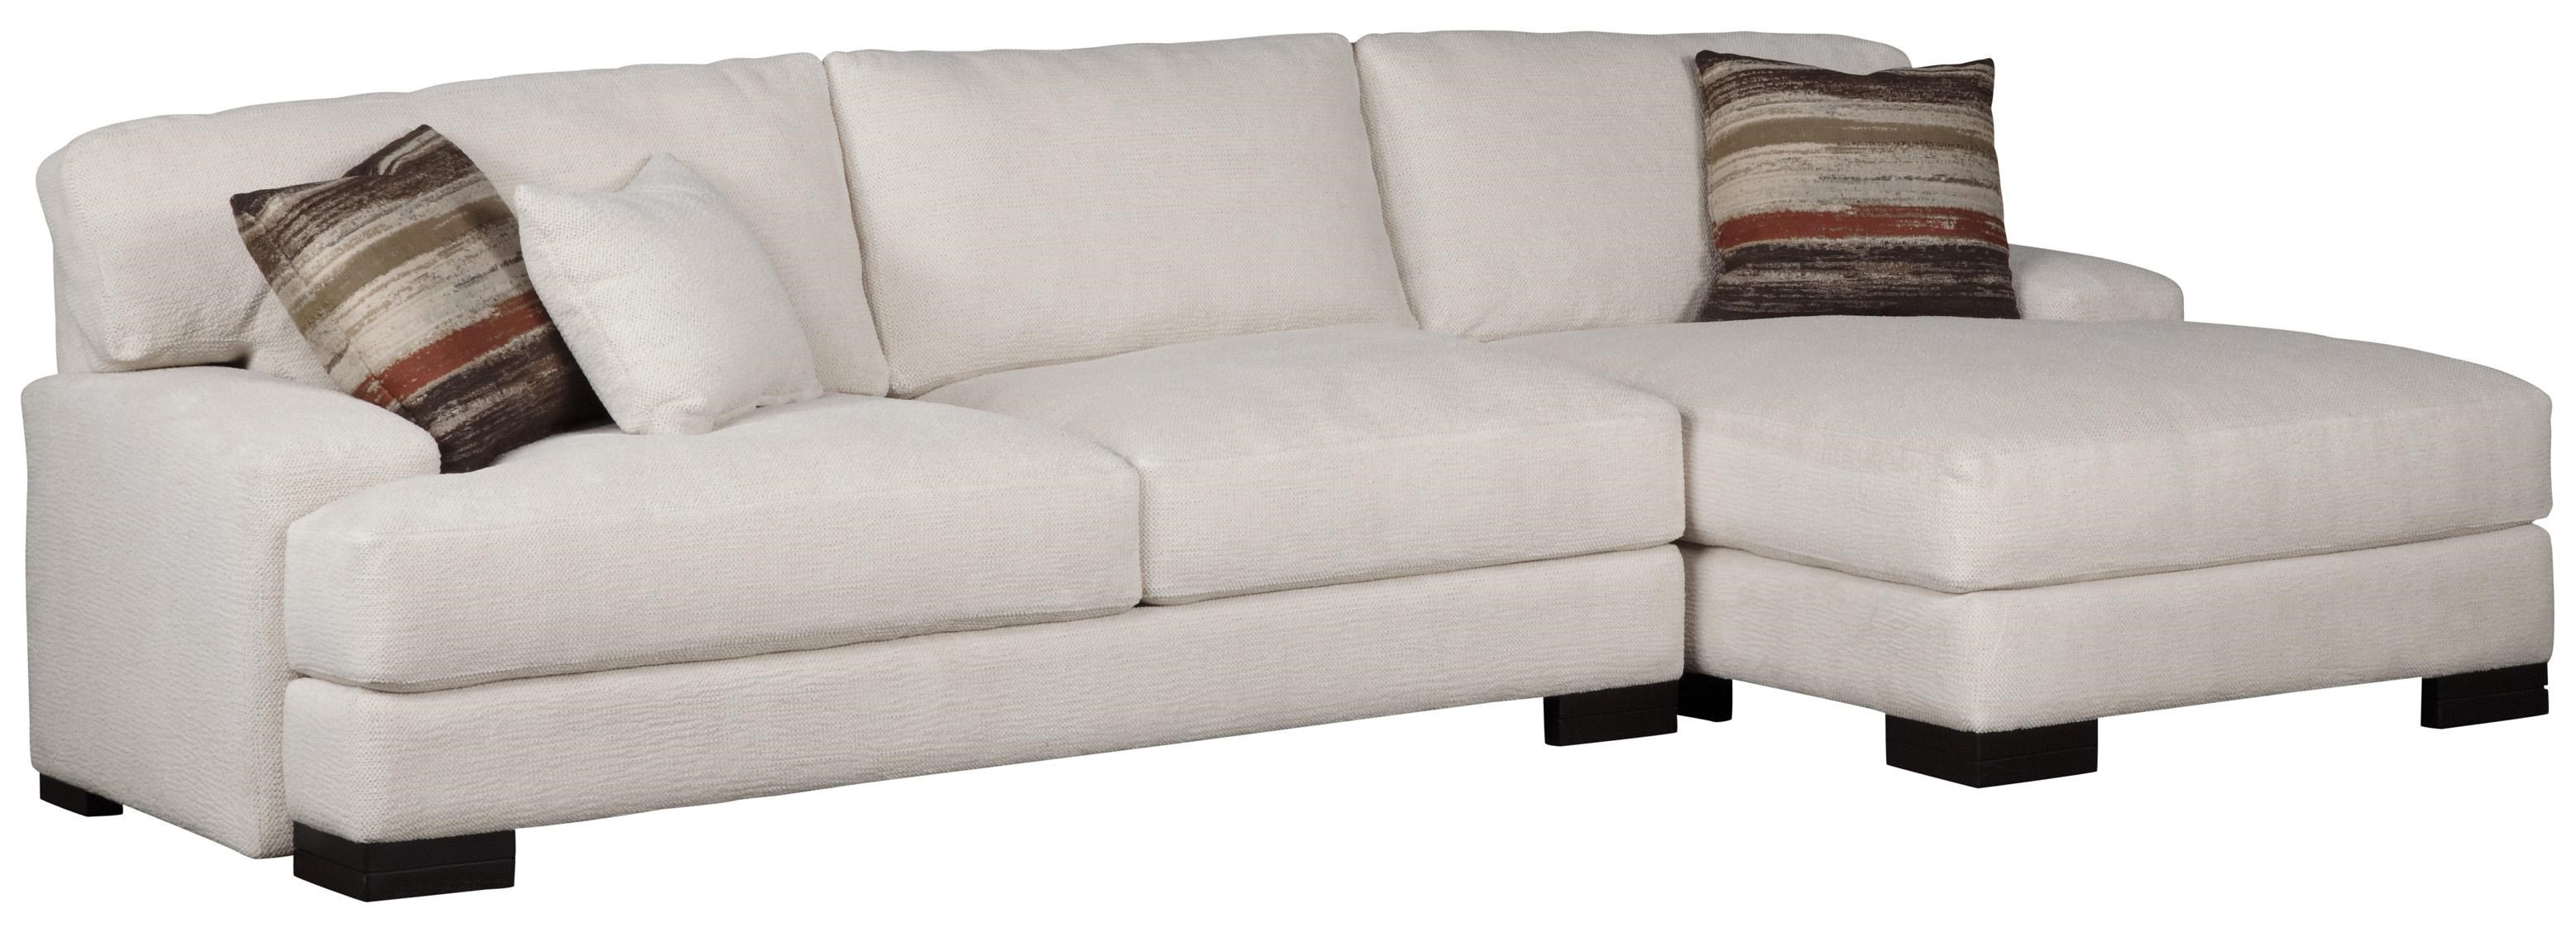 Jonathan Louis Burton Modern Sectional With Right Chaise   Miskelly  Furniture   Sectional Sofas